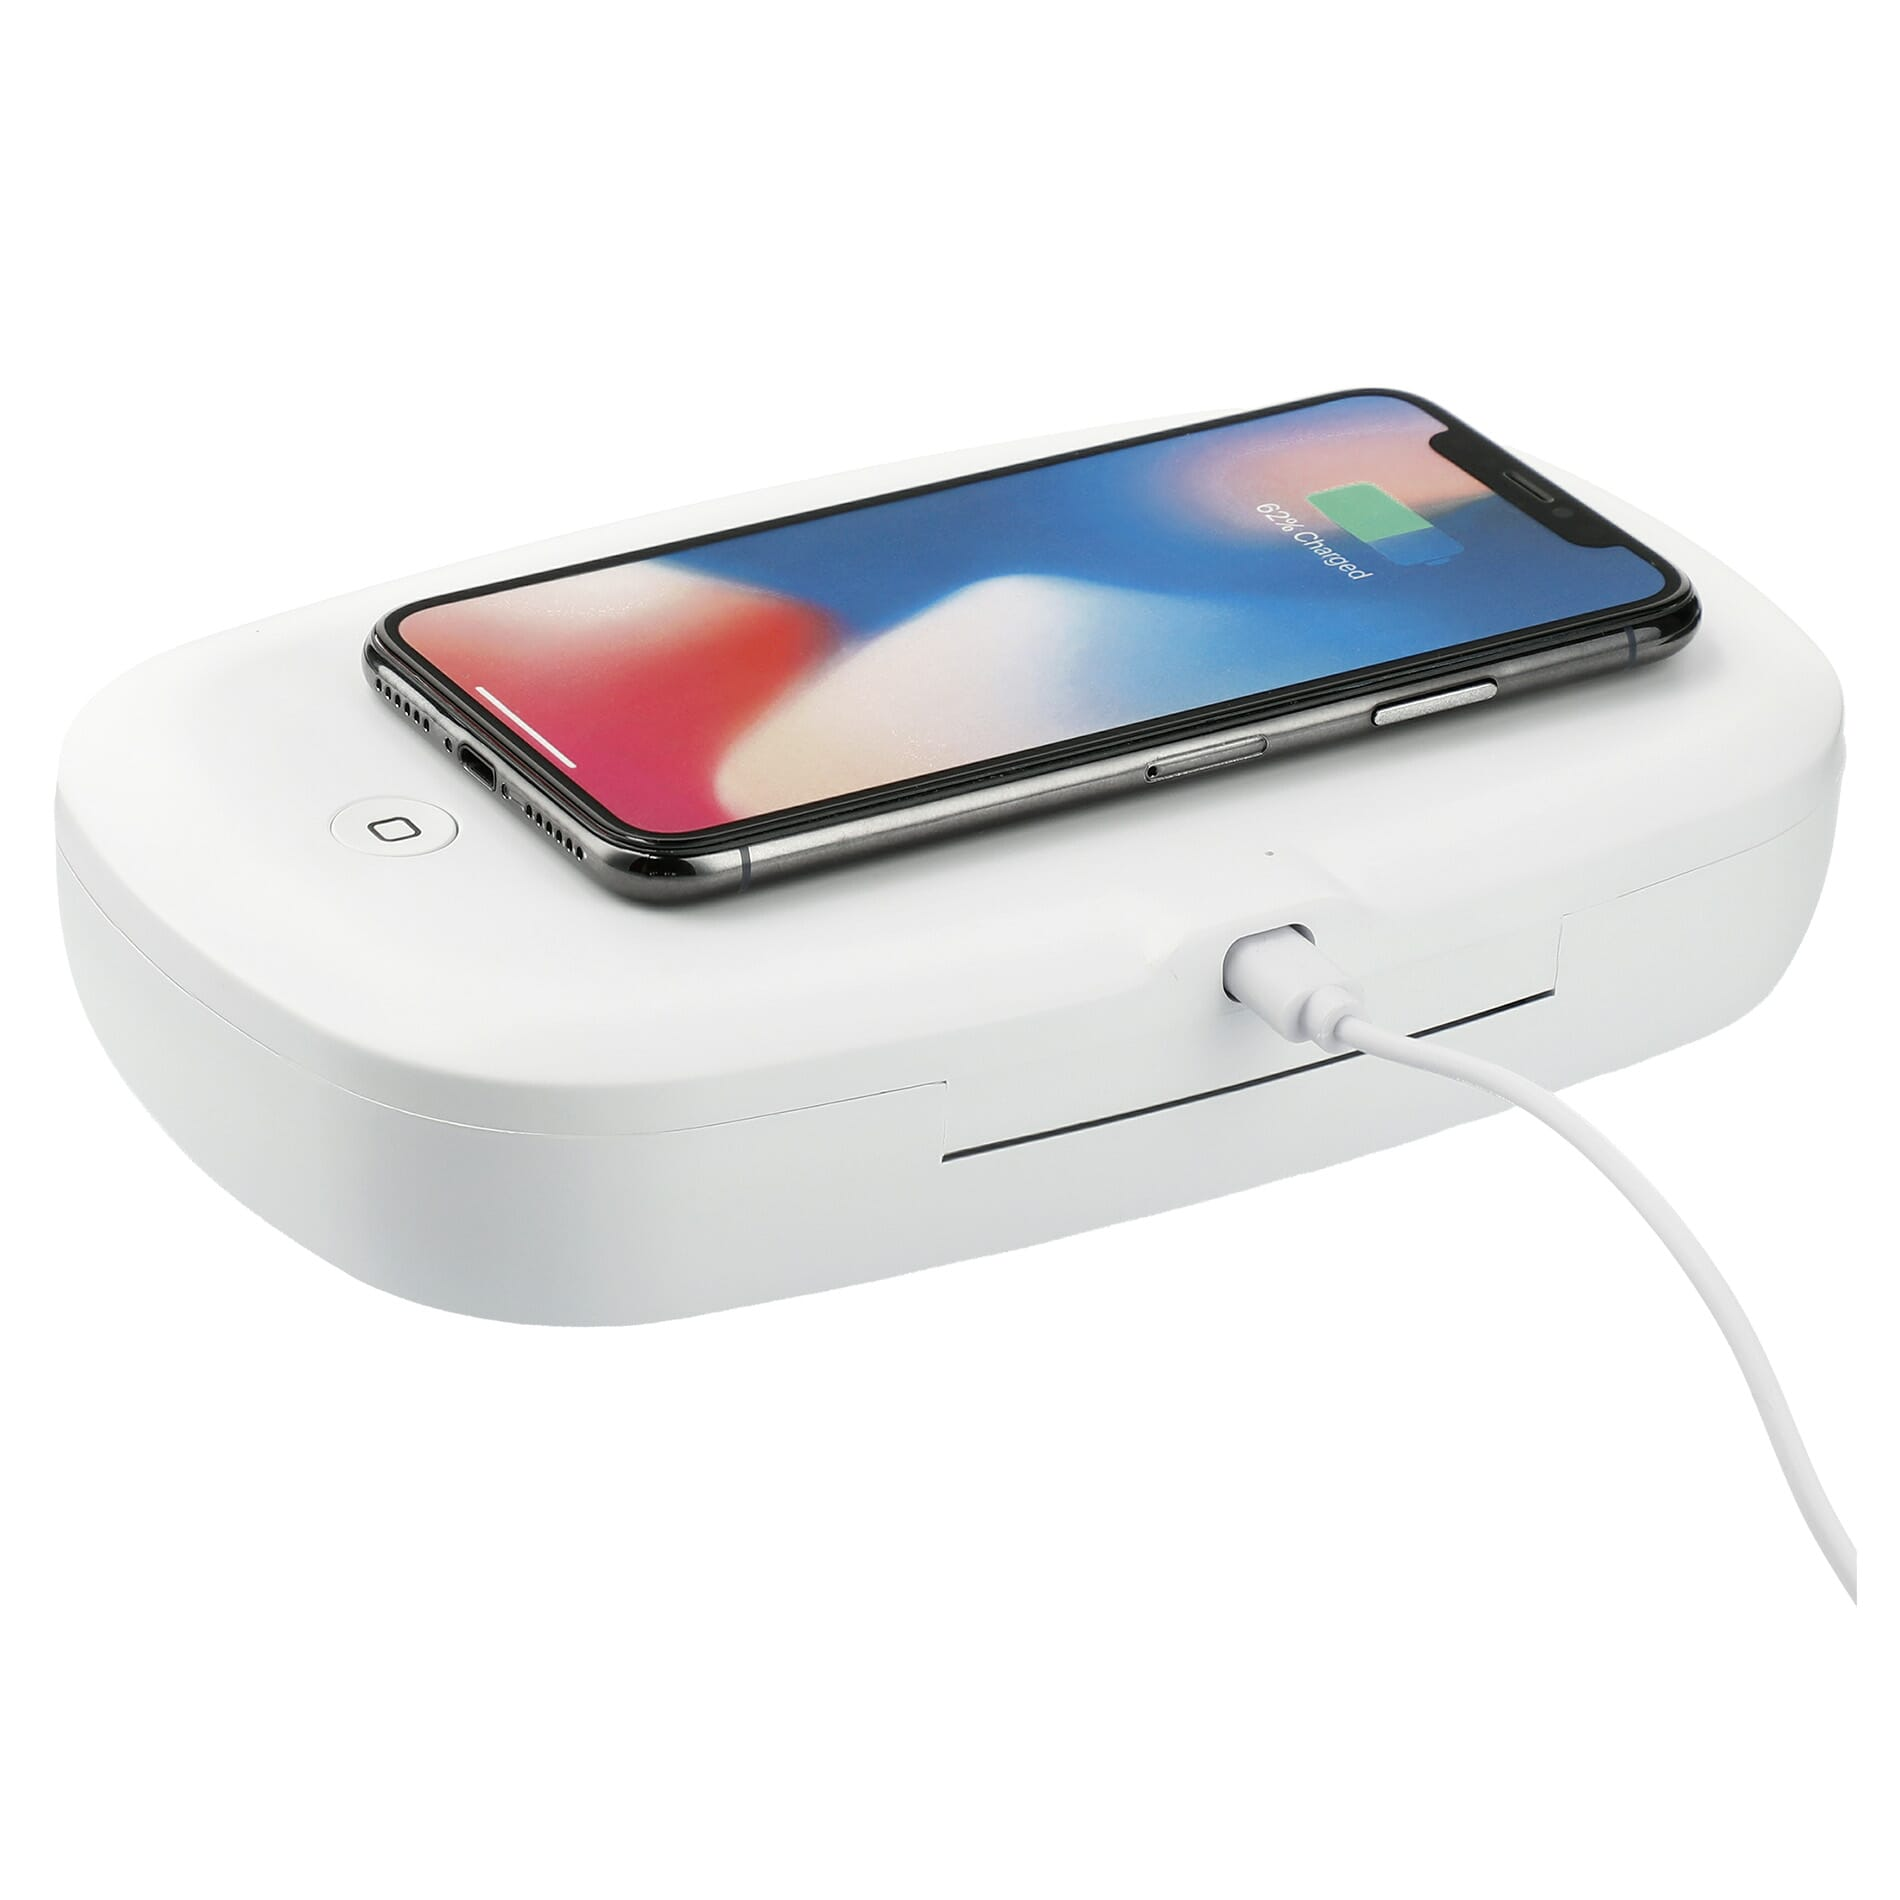 UV Phone Sterilizer and Wireless Charger